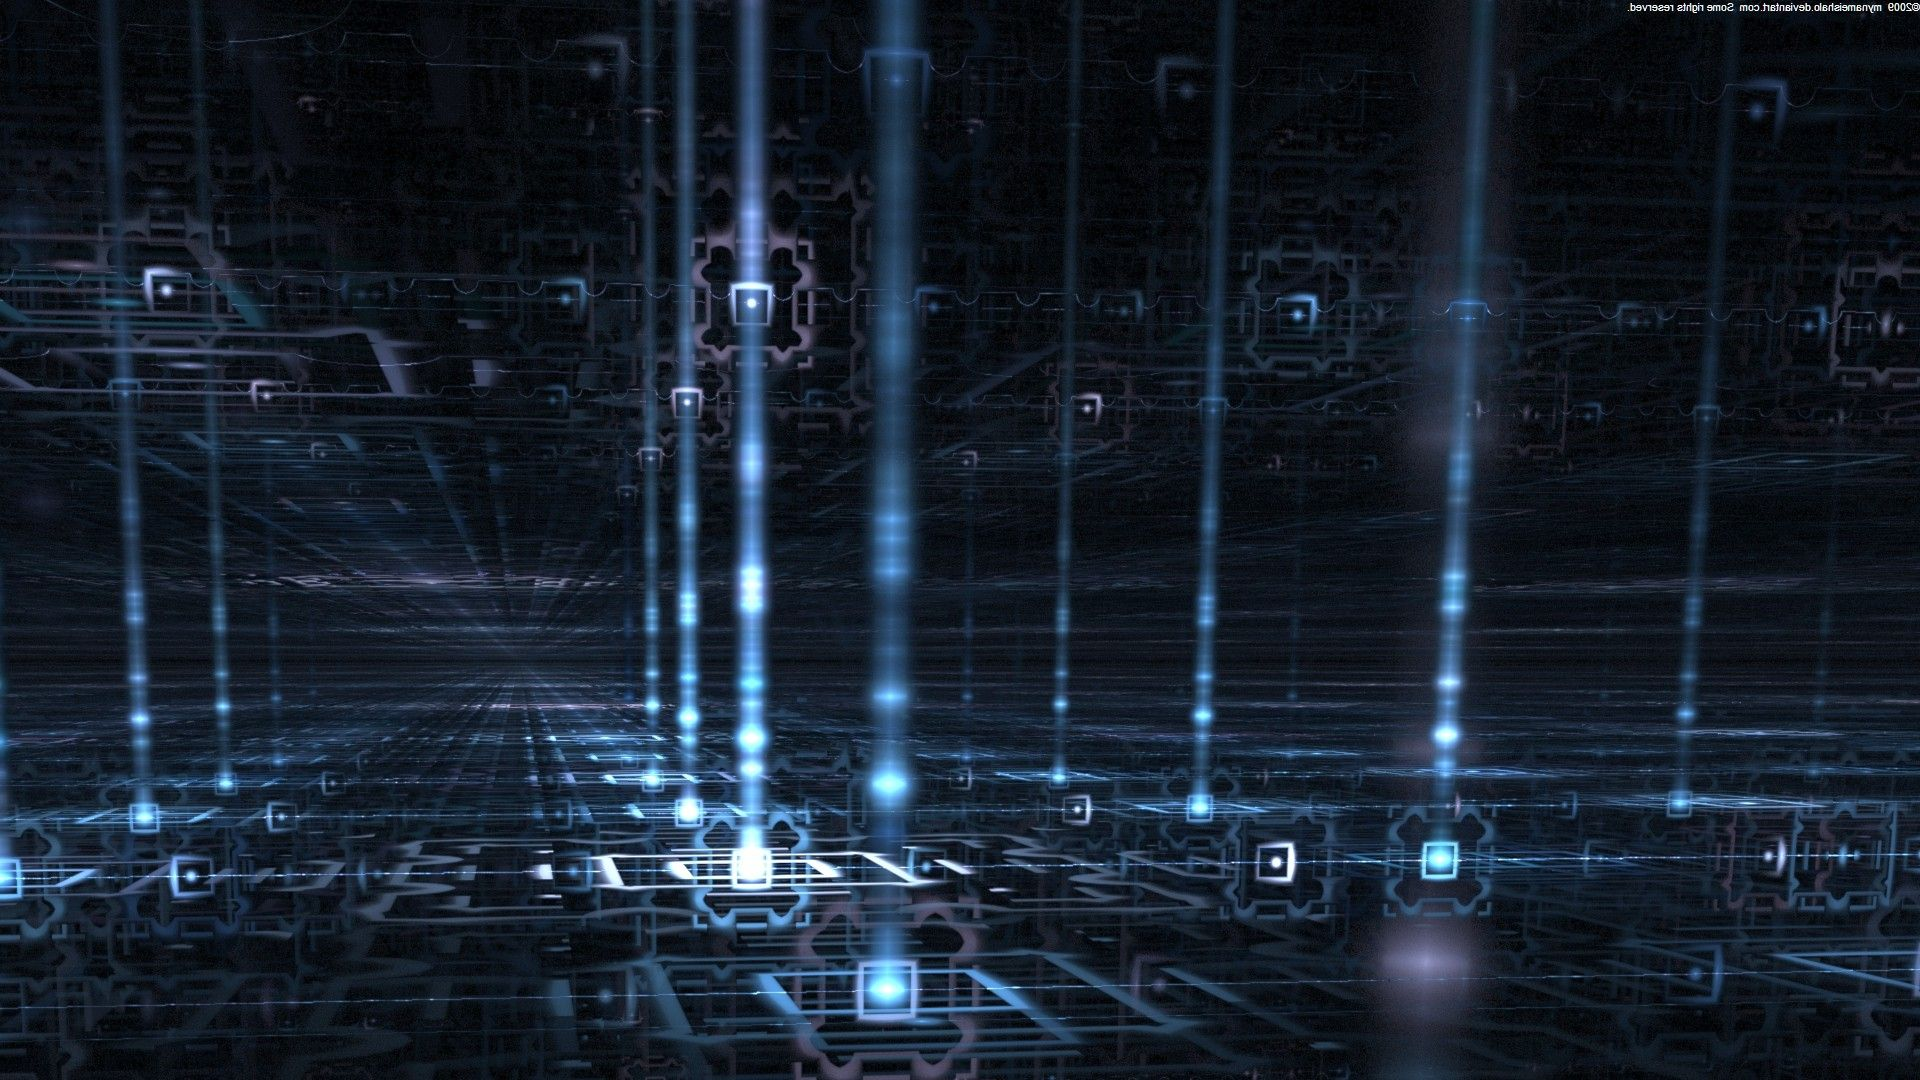 Navigating The Data Stream By Mynameishalo Free Abstract Wallpaper